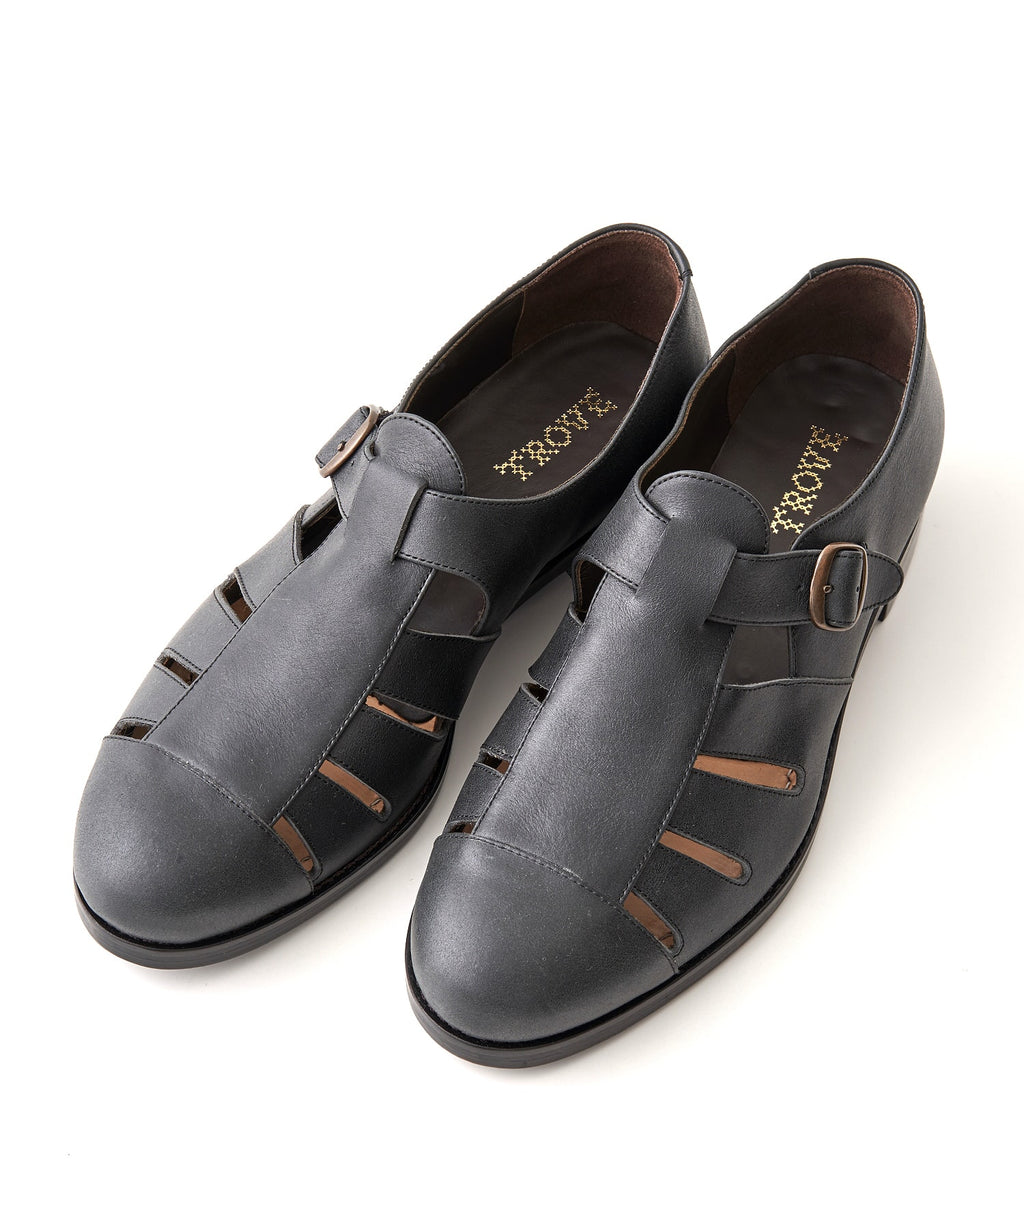 TROVE / LEATHER SHOES / BLACK